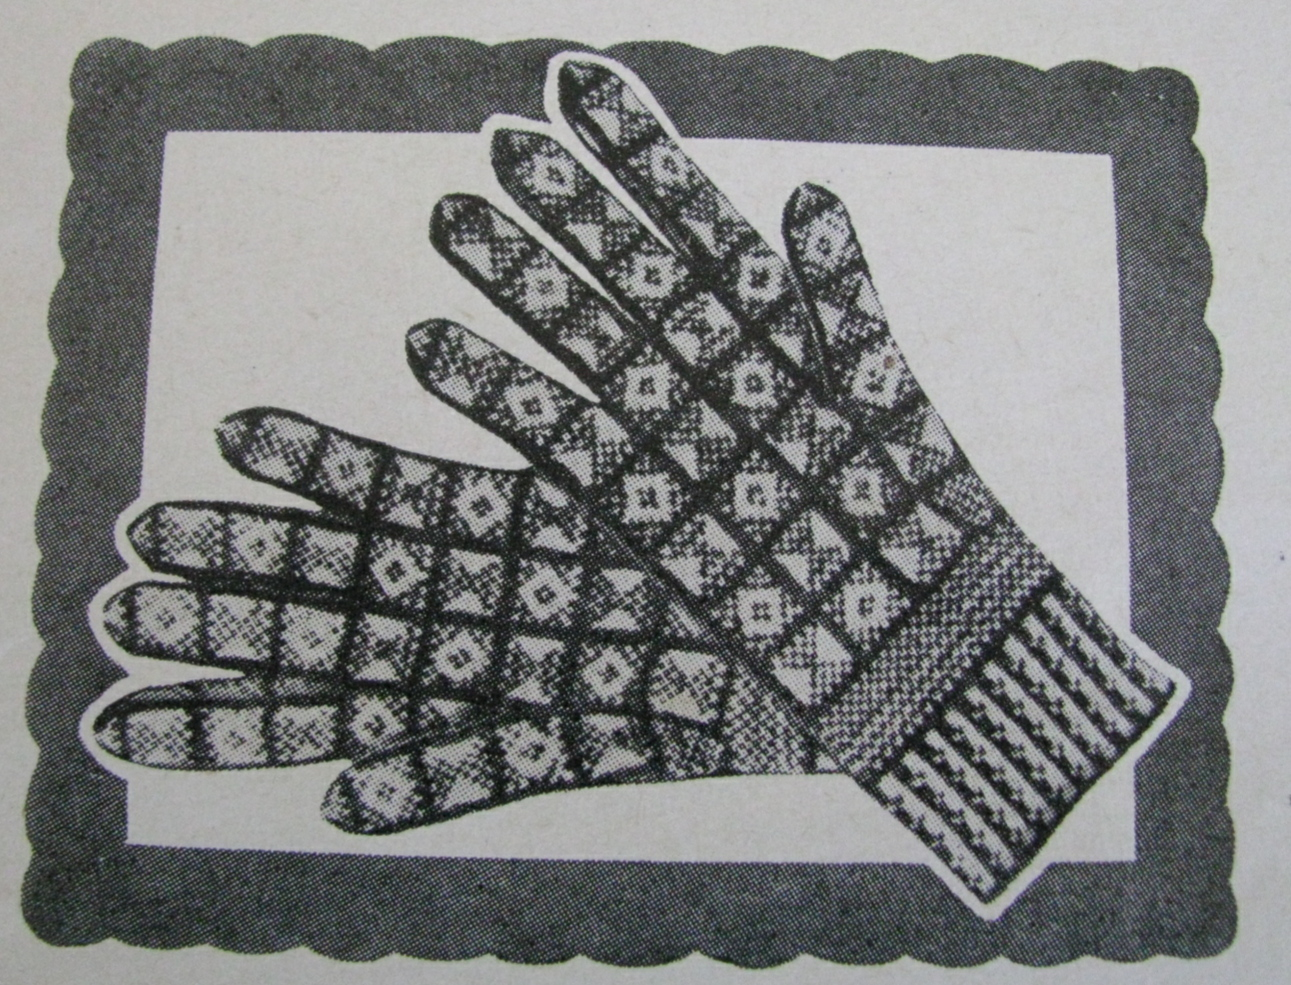 Complicated Knitting Patterns : Shortbread & Ginger: Complicated Knits!